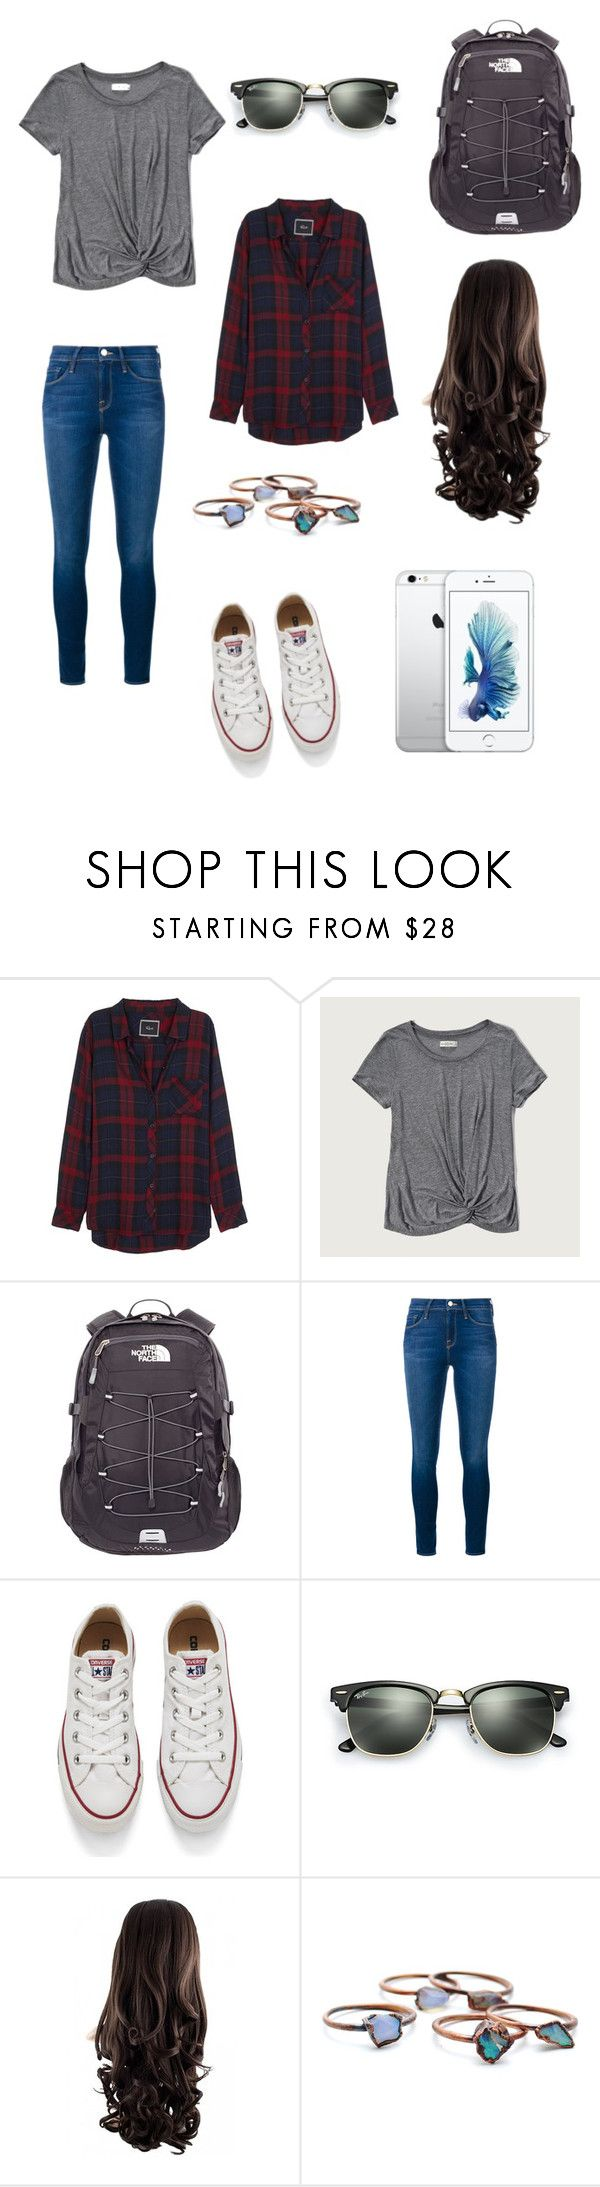 """""""Outfit Inspired By Bella Swan"""" by linsditlow ❤ liked on Polyvore featuring Rails, Abercrombie & Fitch, The North Face, Frame Denim, Converse, Ray-Ban and Child Of Wild"""